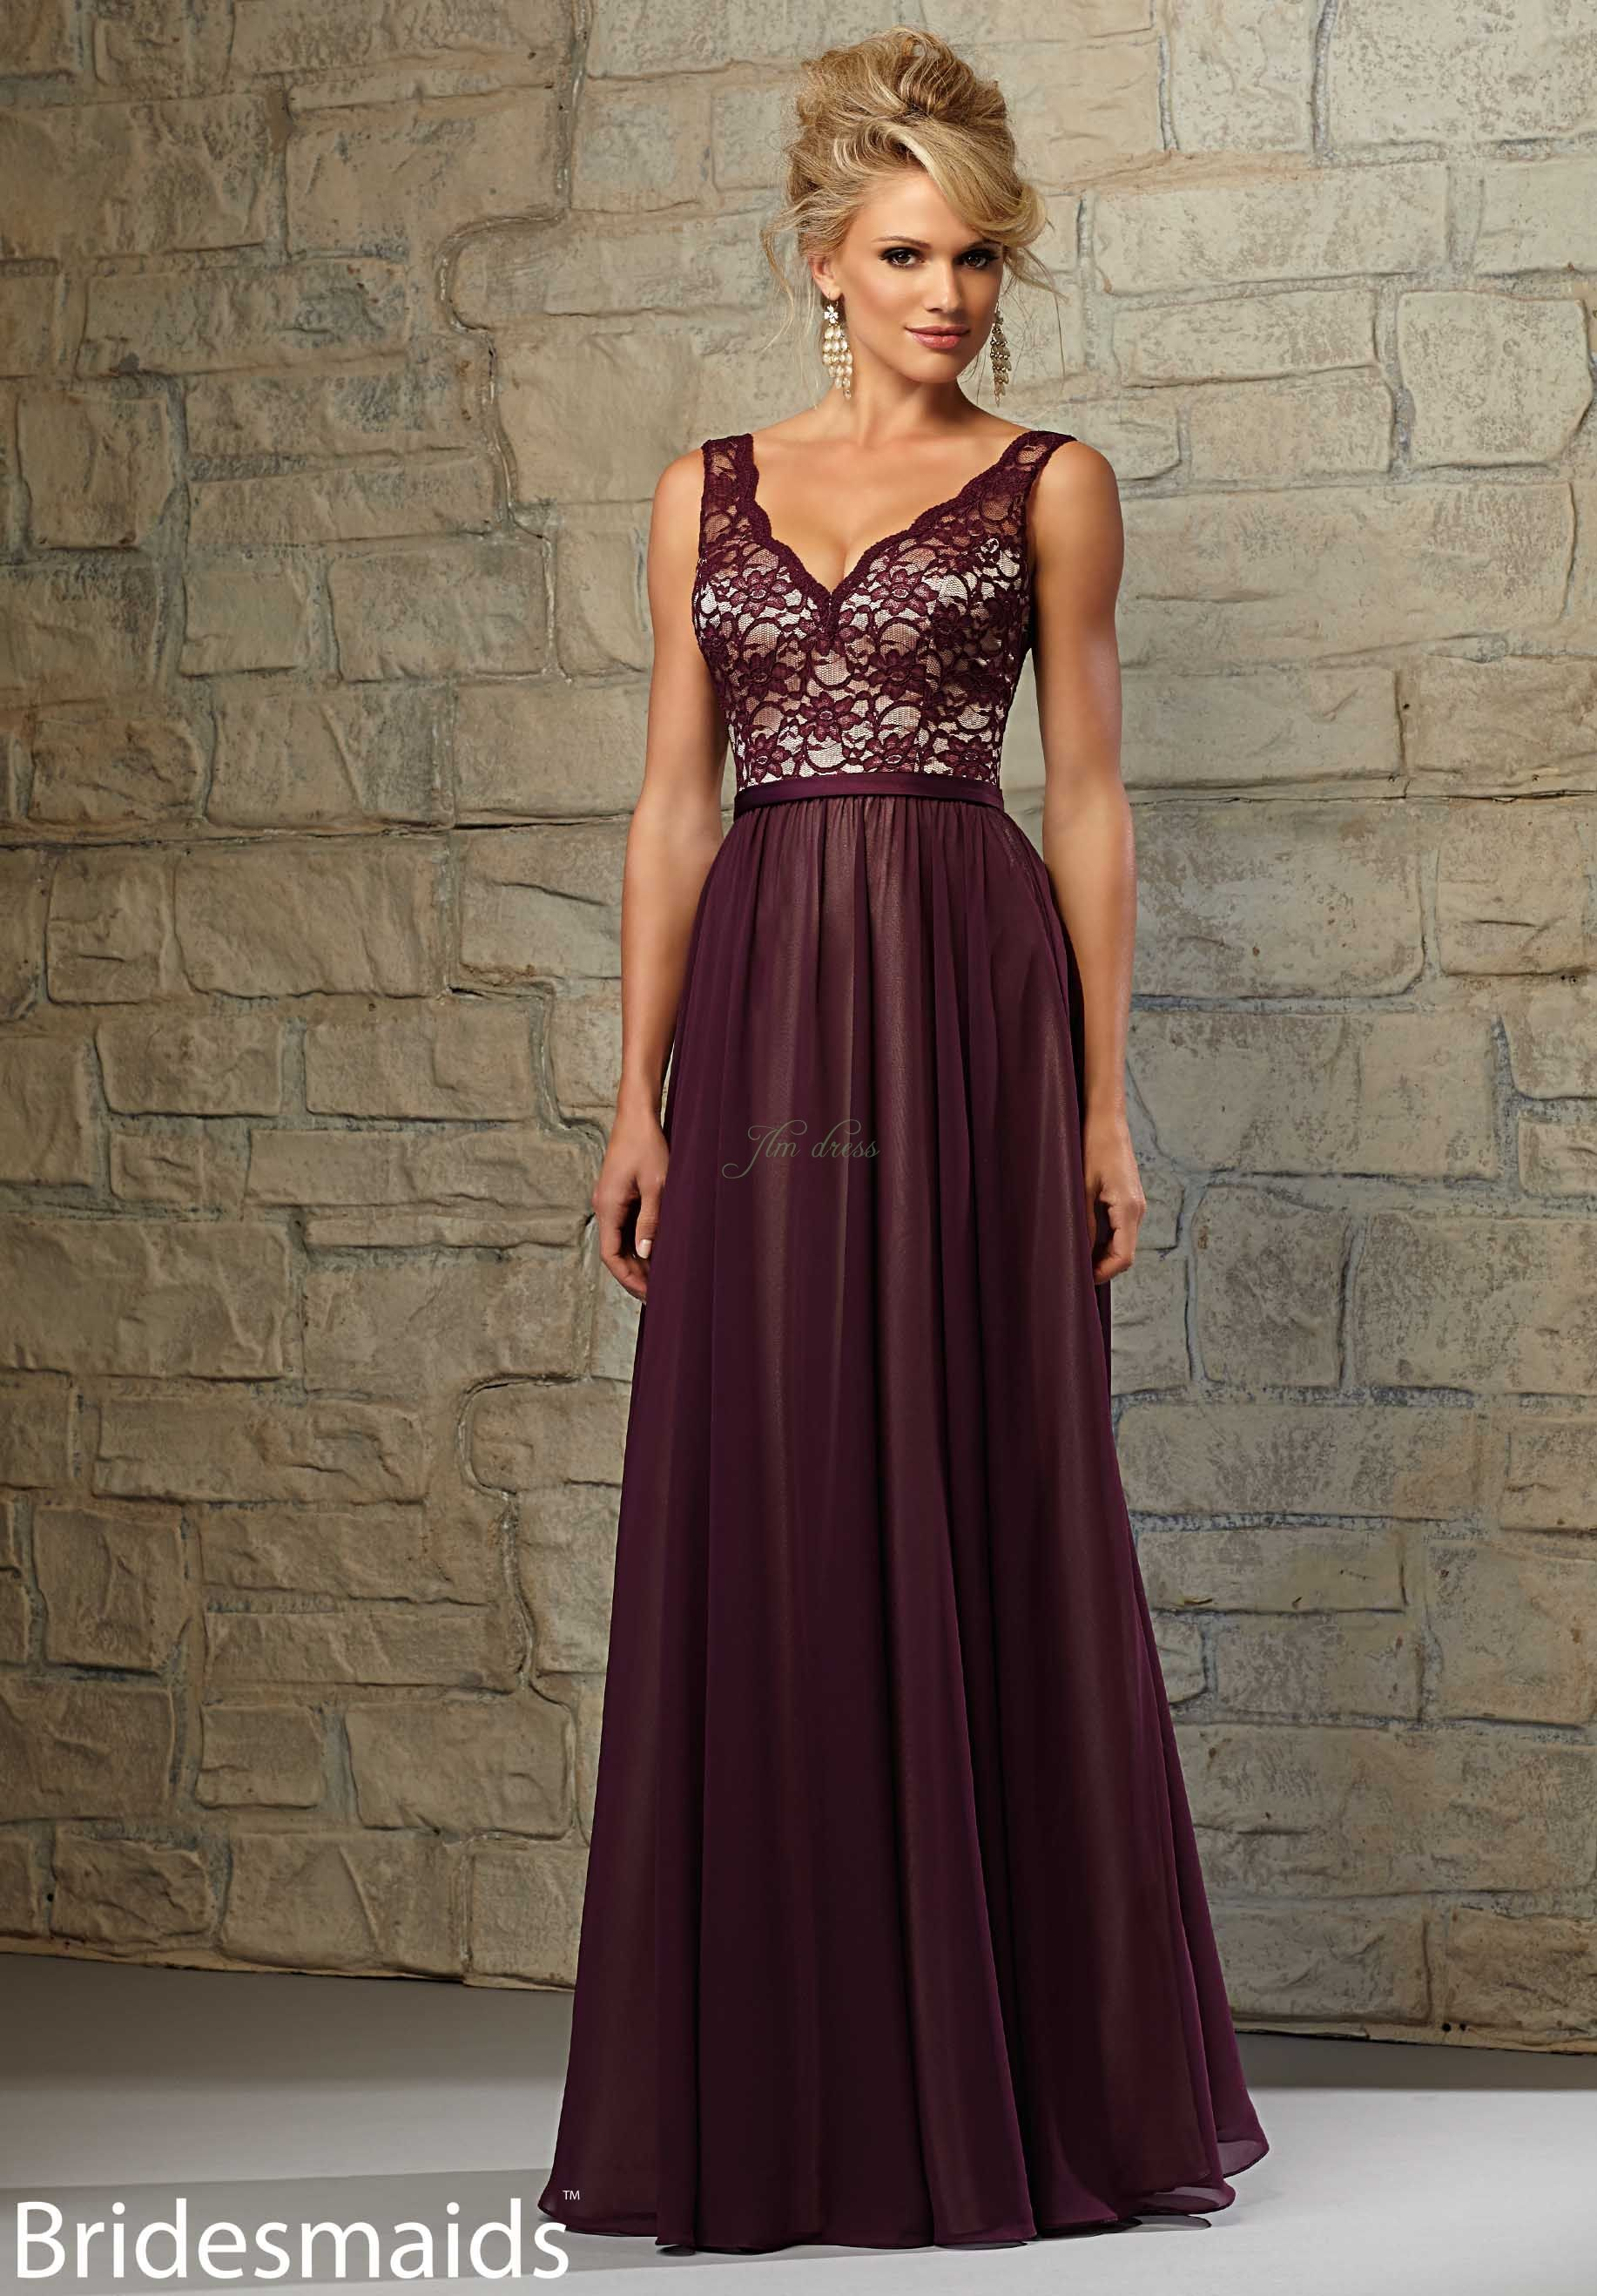 Pin by marvi daa di on outfits pinterest bride dresses